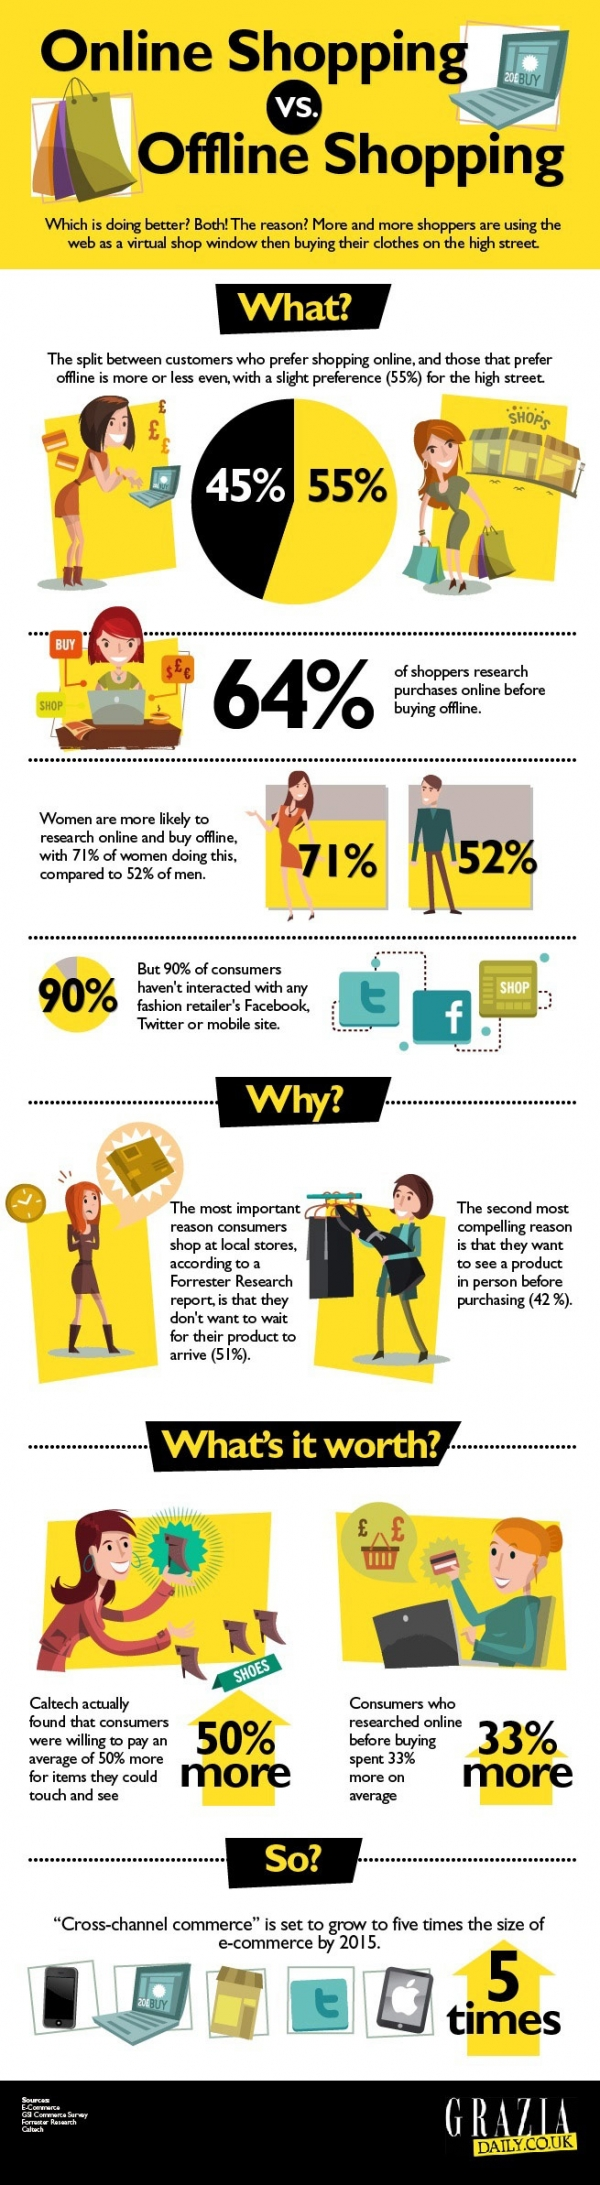 Grazia Online - Online Shopping VS Offline Shopping